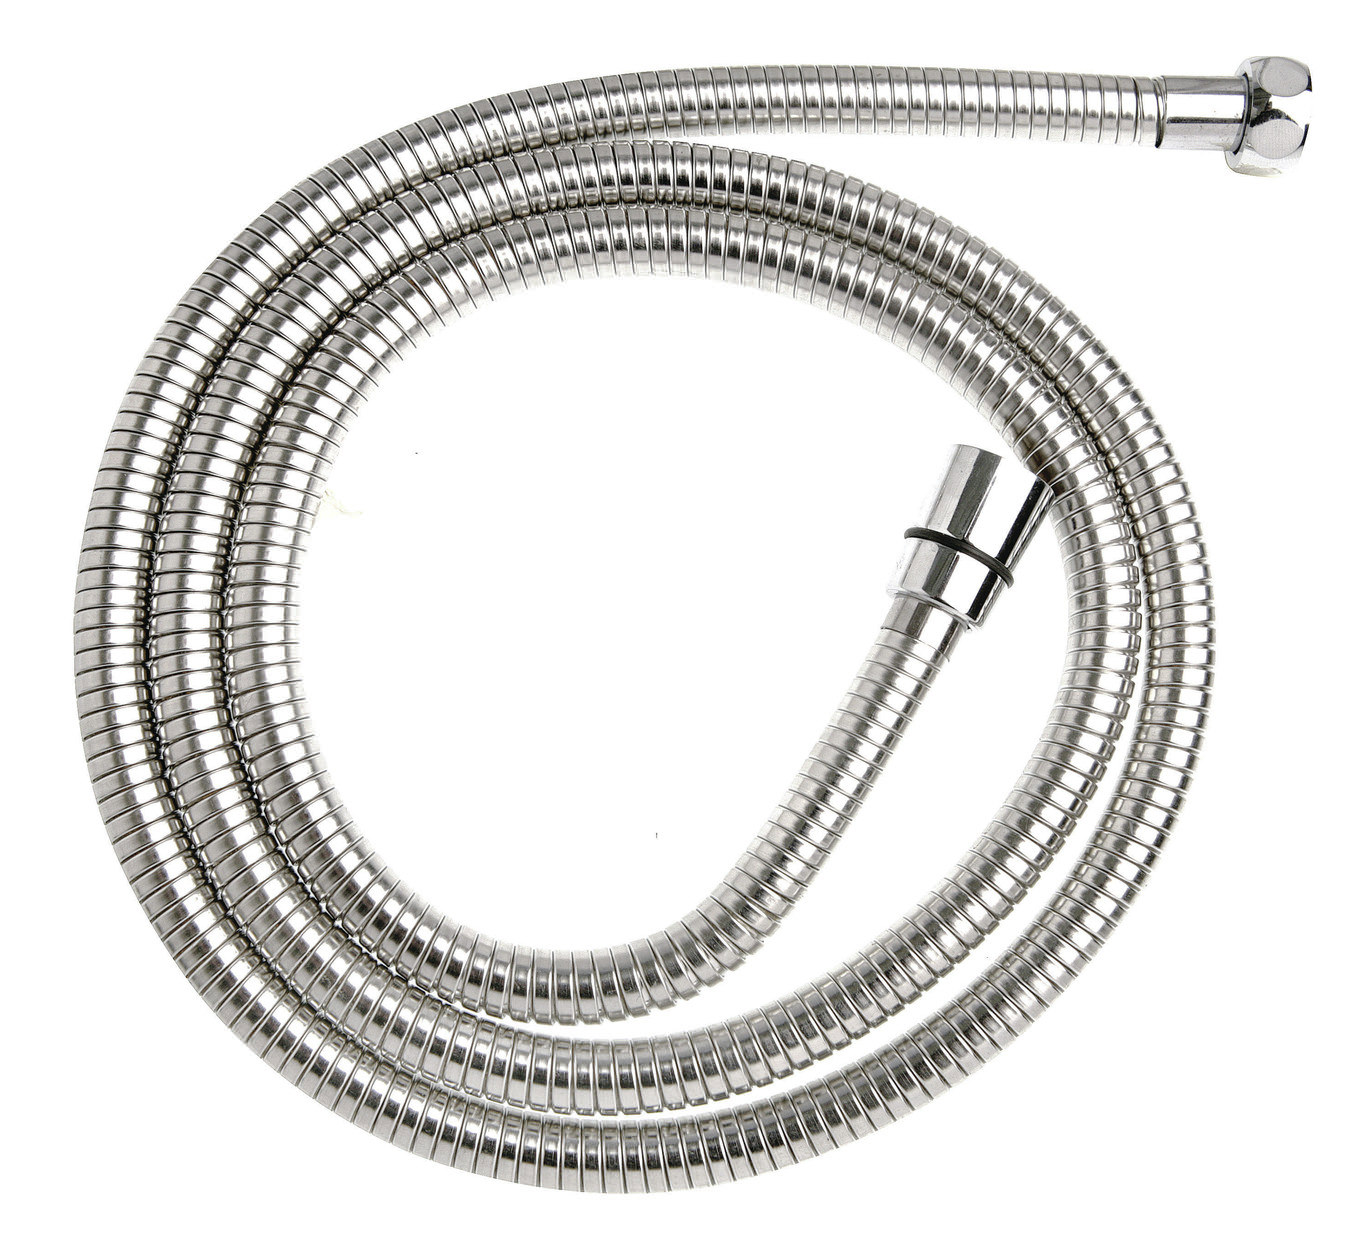 Croydex Reinforced Stainless Steel Stretch Shower Hose